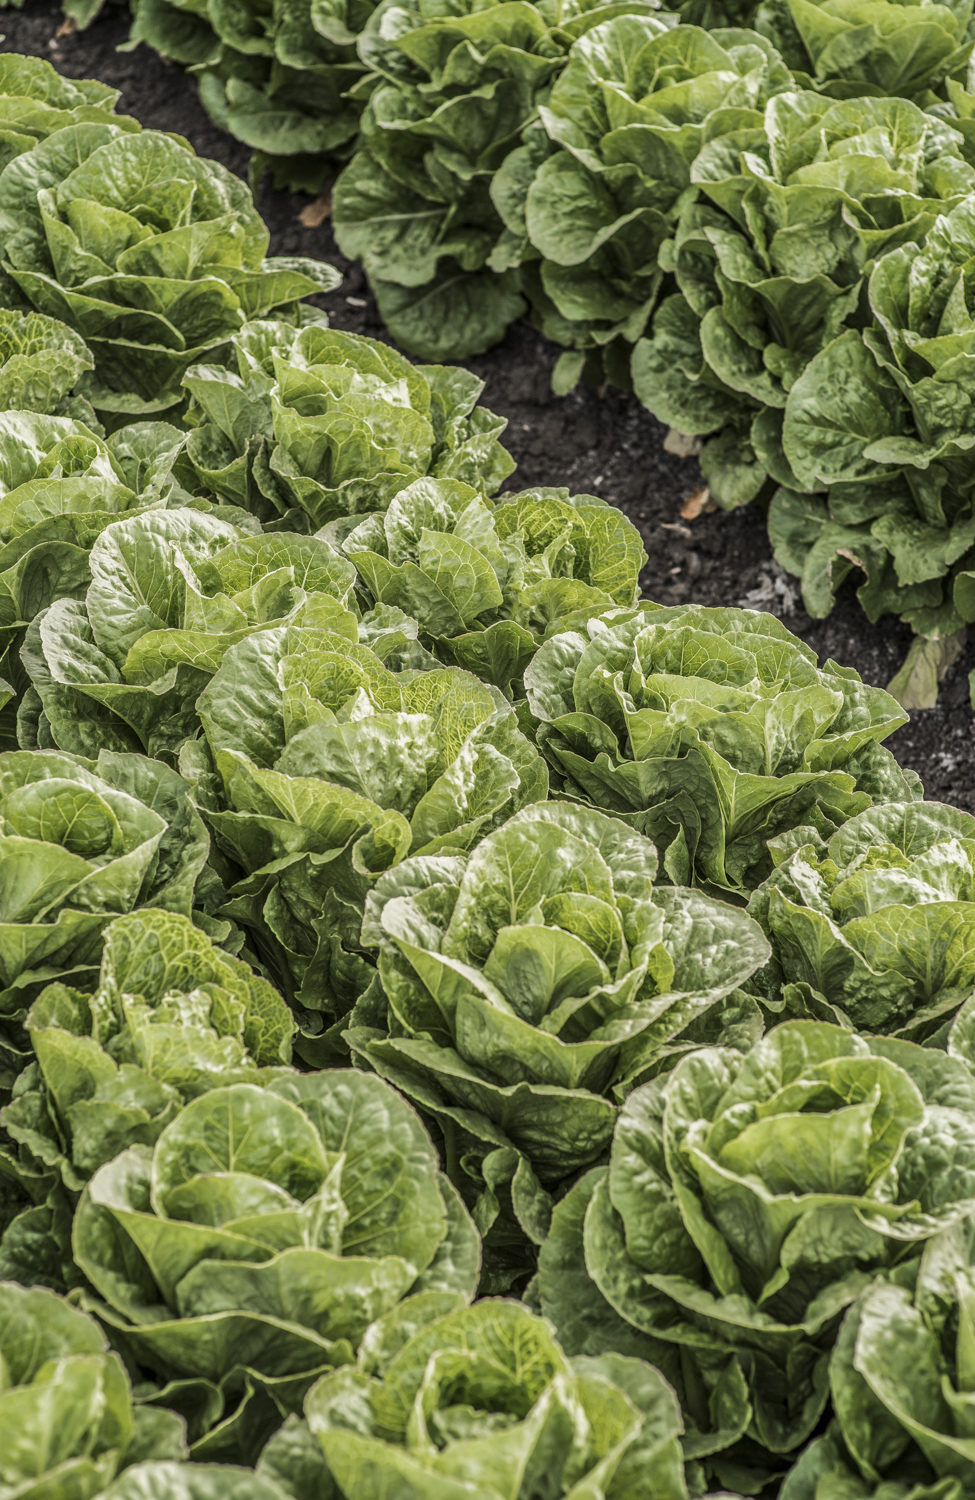 Farmer in field of lettuce